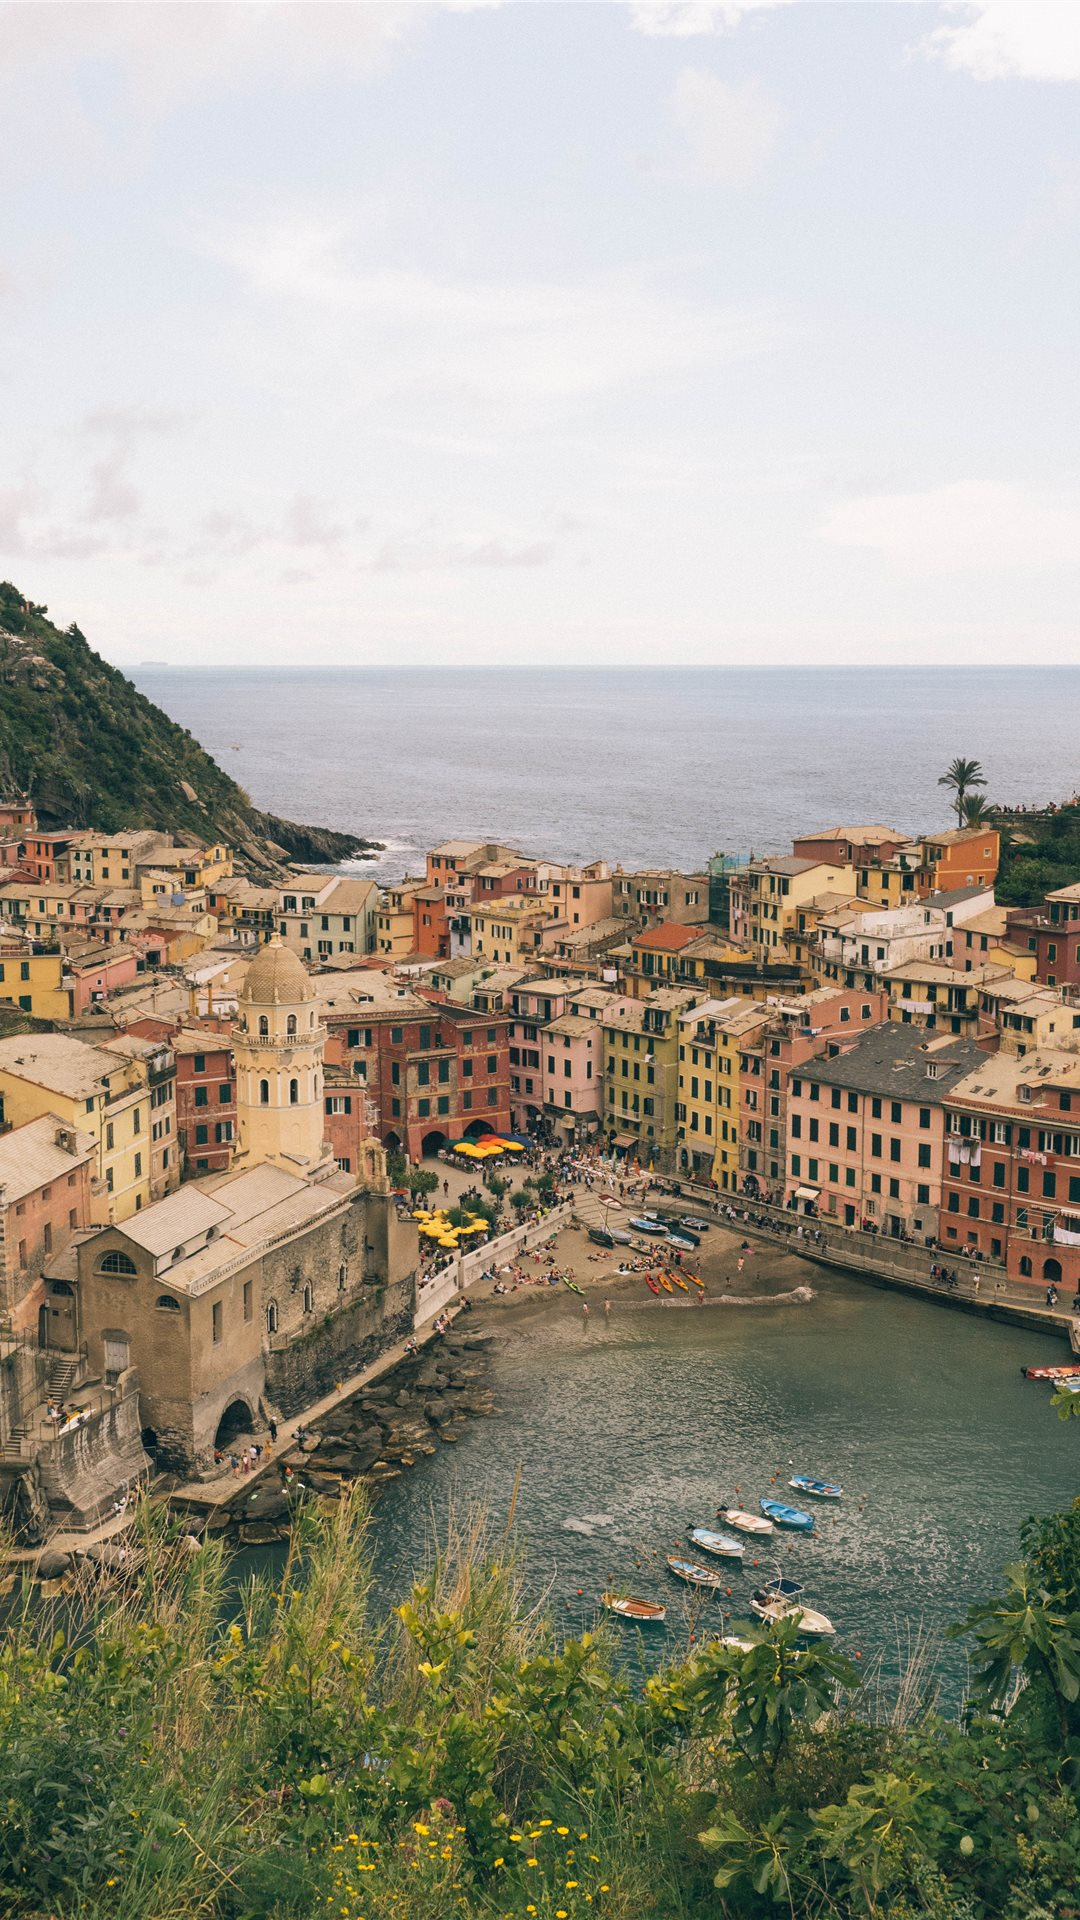 Vernazza Cinque Terre Italy May 2019 iPhone Wallpapers Download 1080x1920